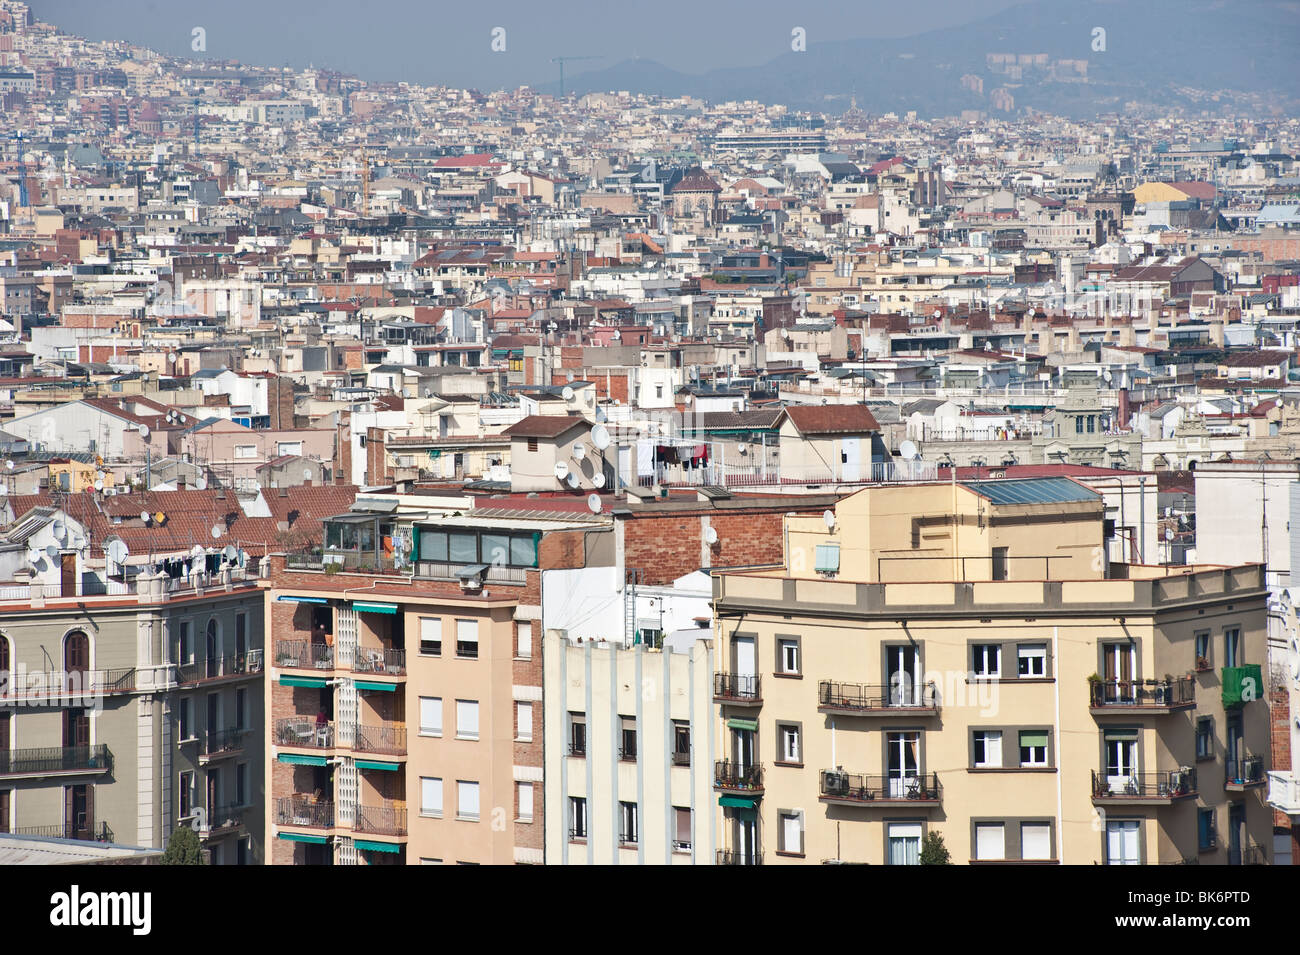 General view of Barcelona from Montjuic, SPain. - Stock Image